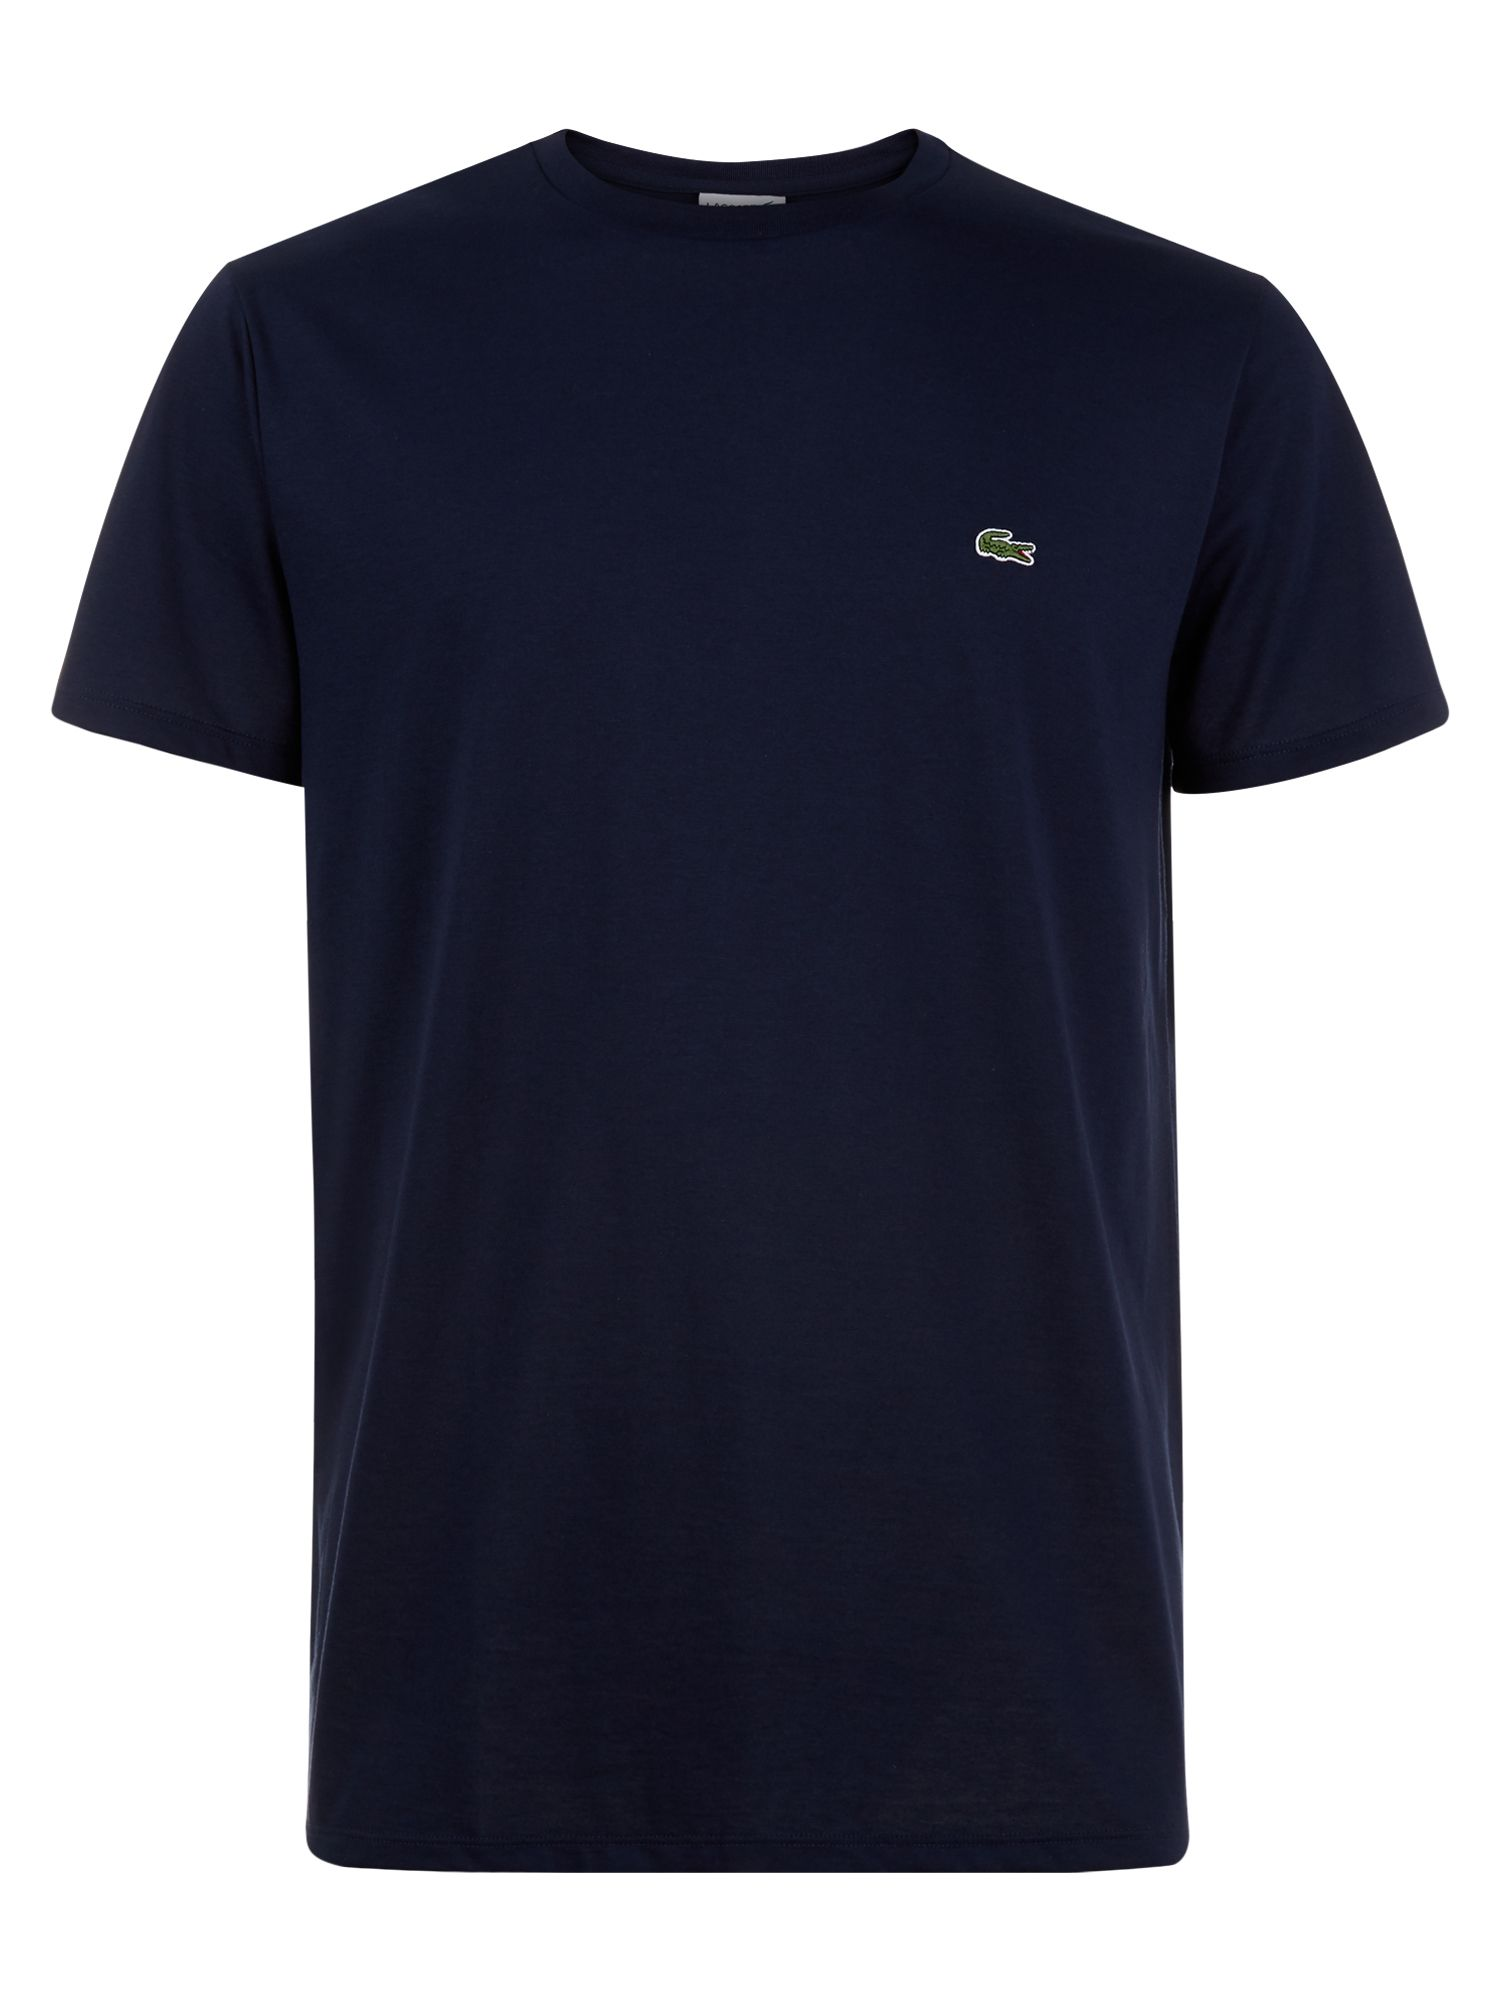 Men's Lacoste Crew Neck Cotton T-shirt, Ink